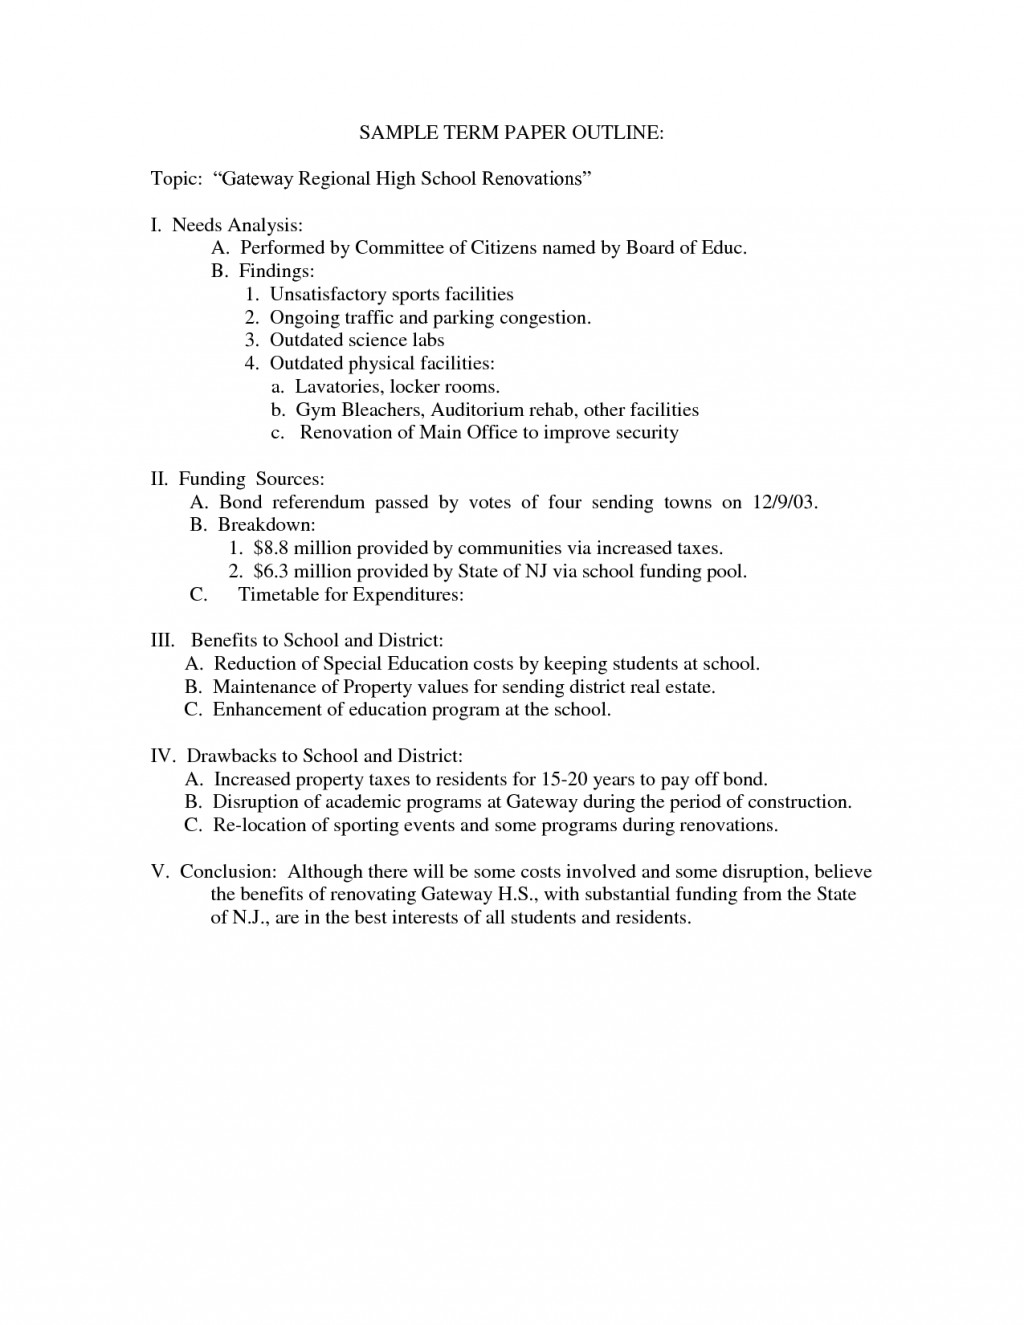 017 Term Paper Outline High School Research Topics Awesome Sports Topics- Large